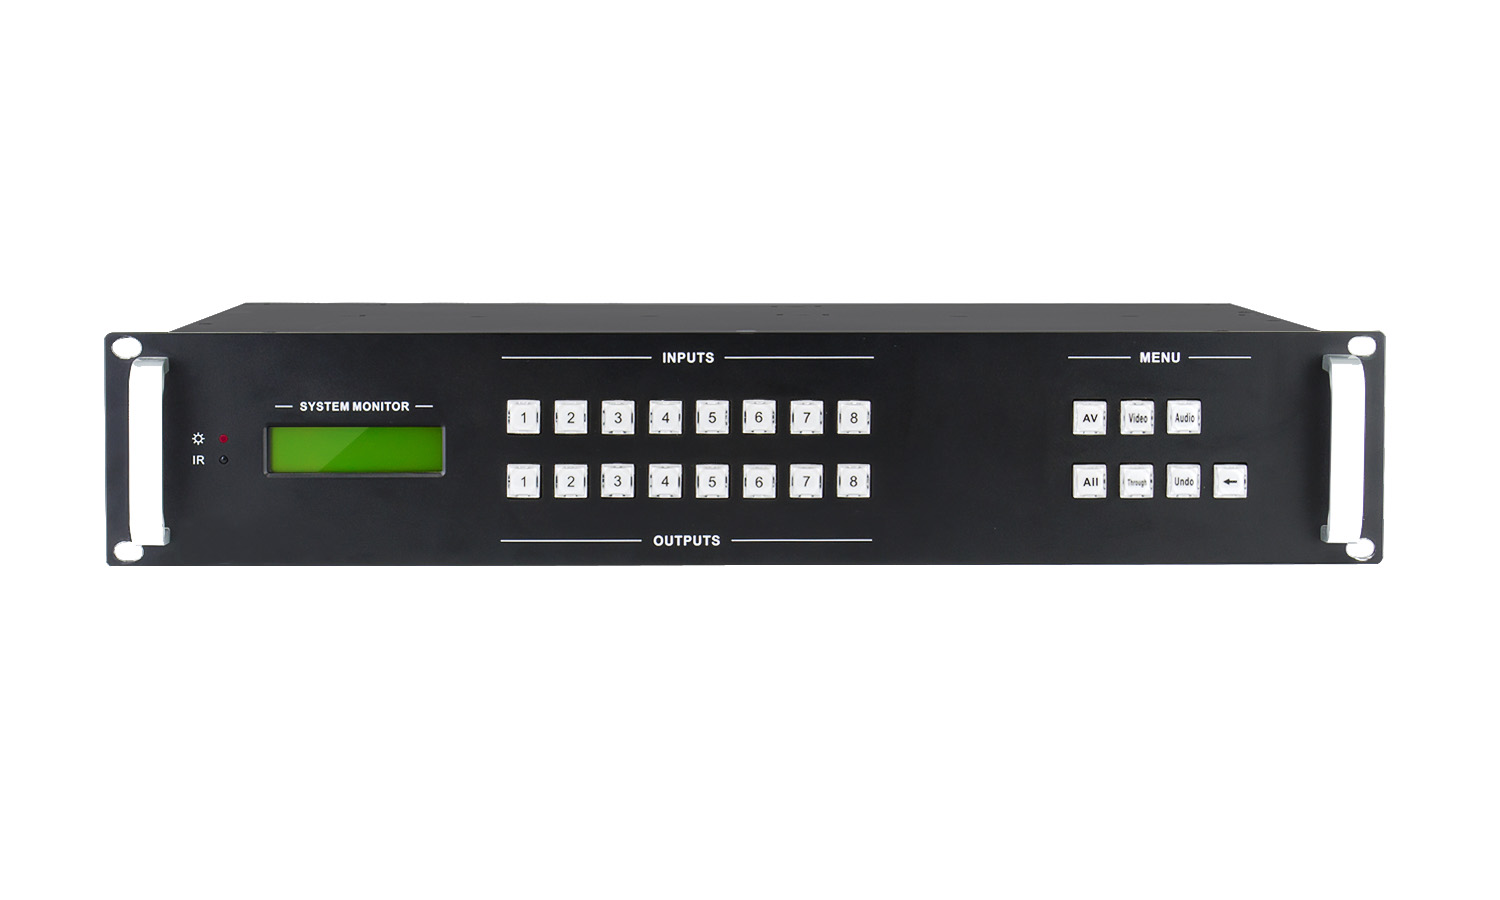 BG-MS-8X8-DVI Modular 8X8 Seamless DVI Matrix Switcher w/TCP/IP RS232 Control by BZBGEAR